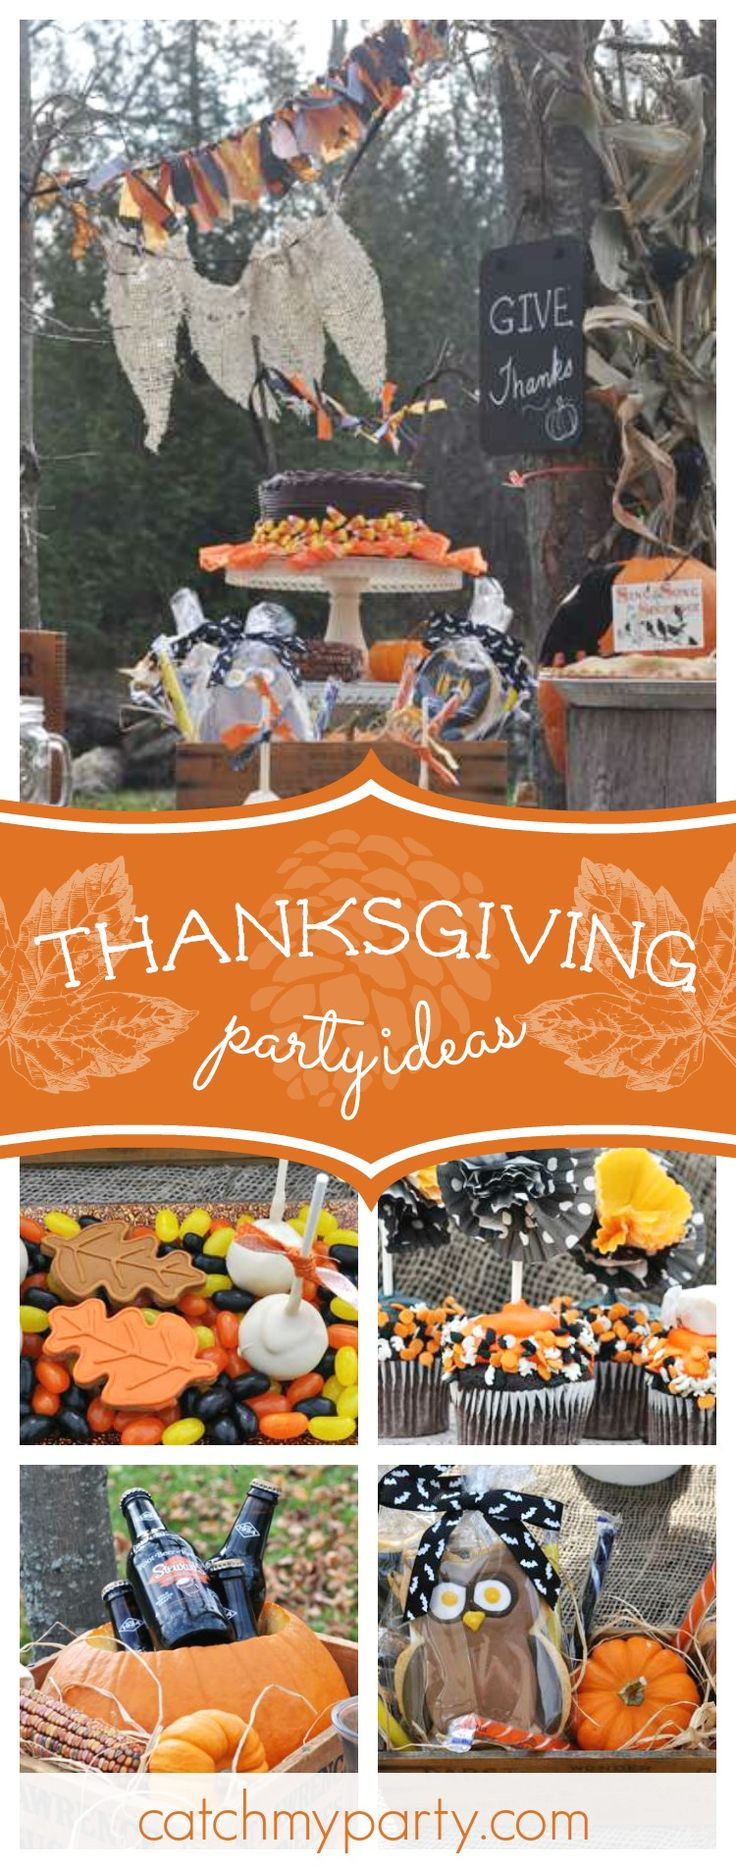 Check out this awesome Thanksgiving celebration! The cookies are wonderful!! See more party ideas and share yours at CatchMyParty.com  #party #thanksgiving